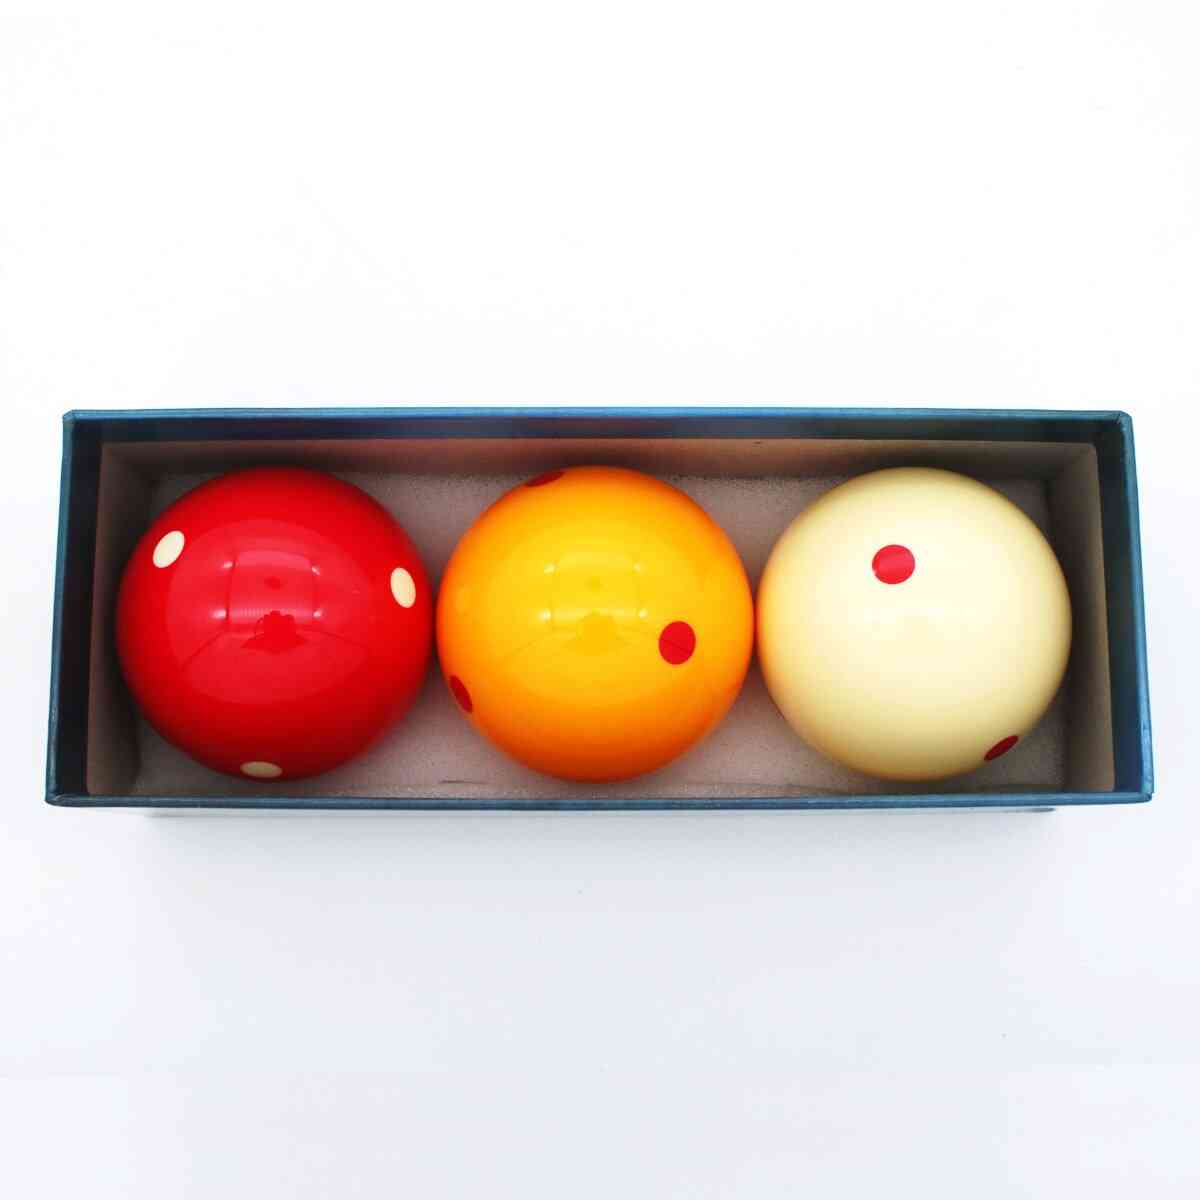 Billiard Carom Balls Suitable For Carom Table